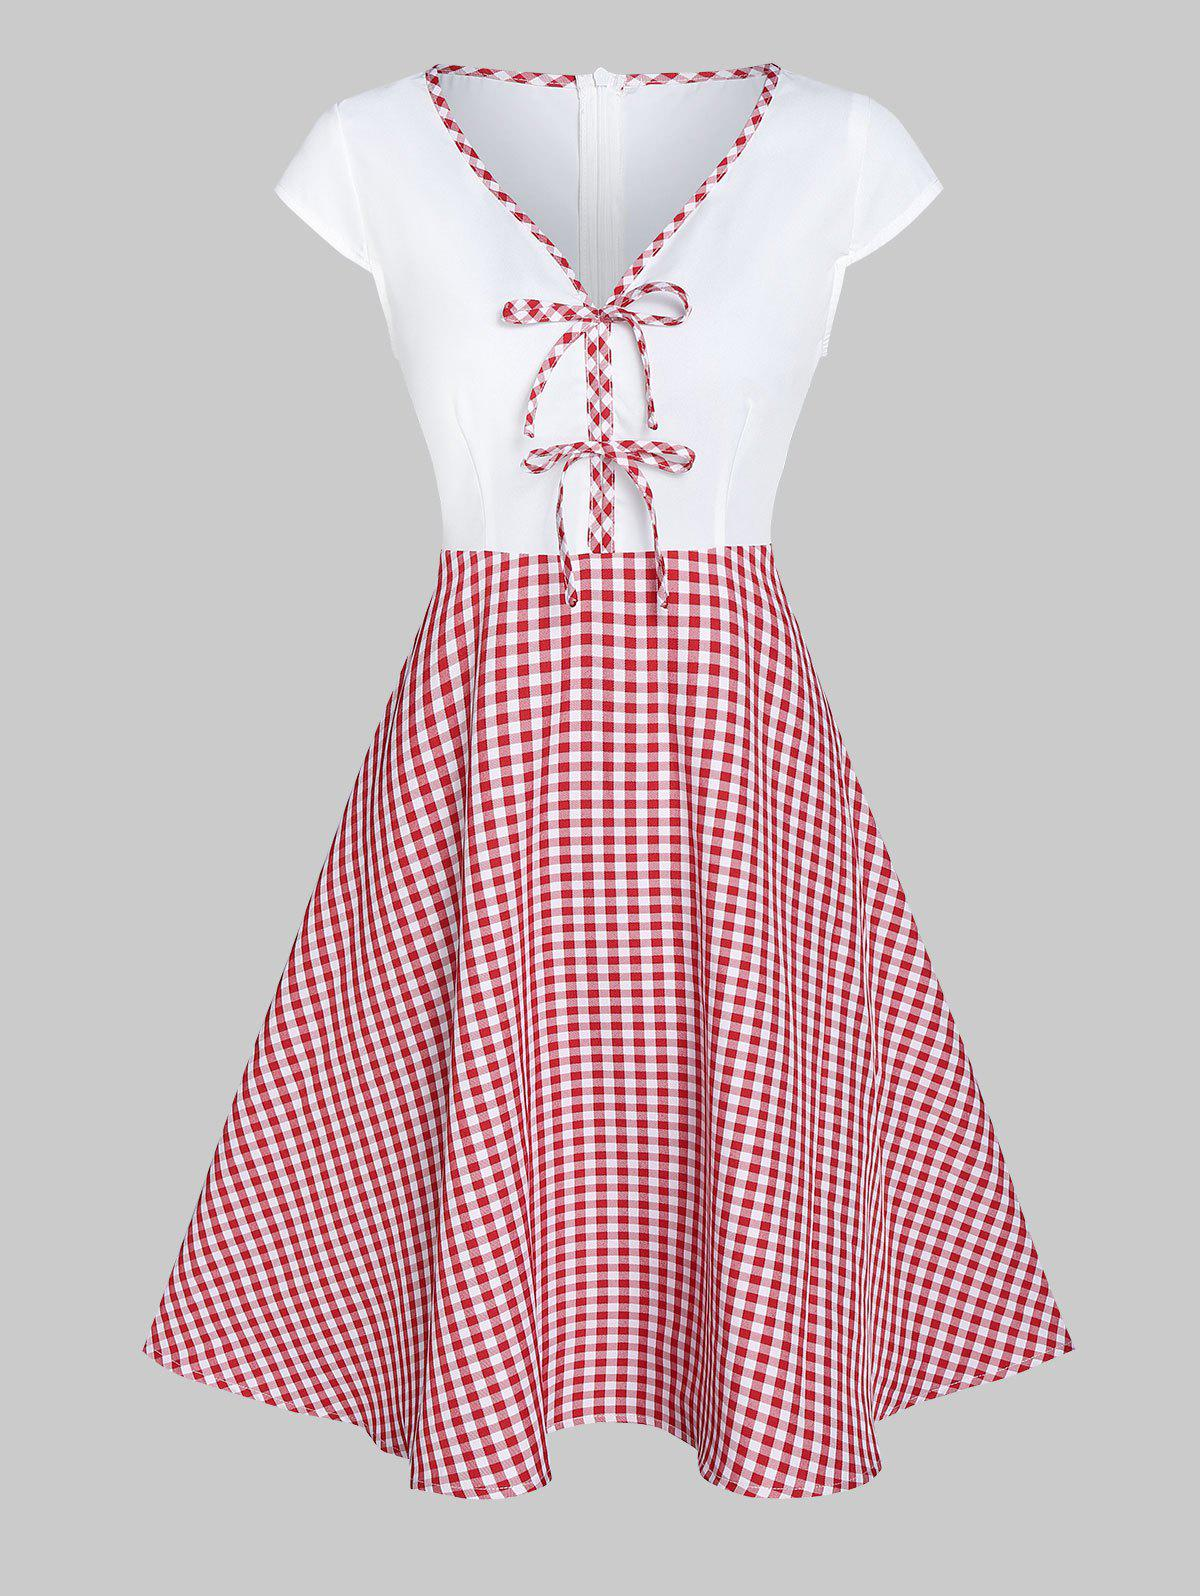 Plaid Print Bowknot Embellished Flare Dress - RED L